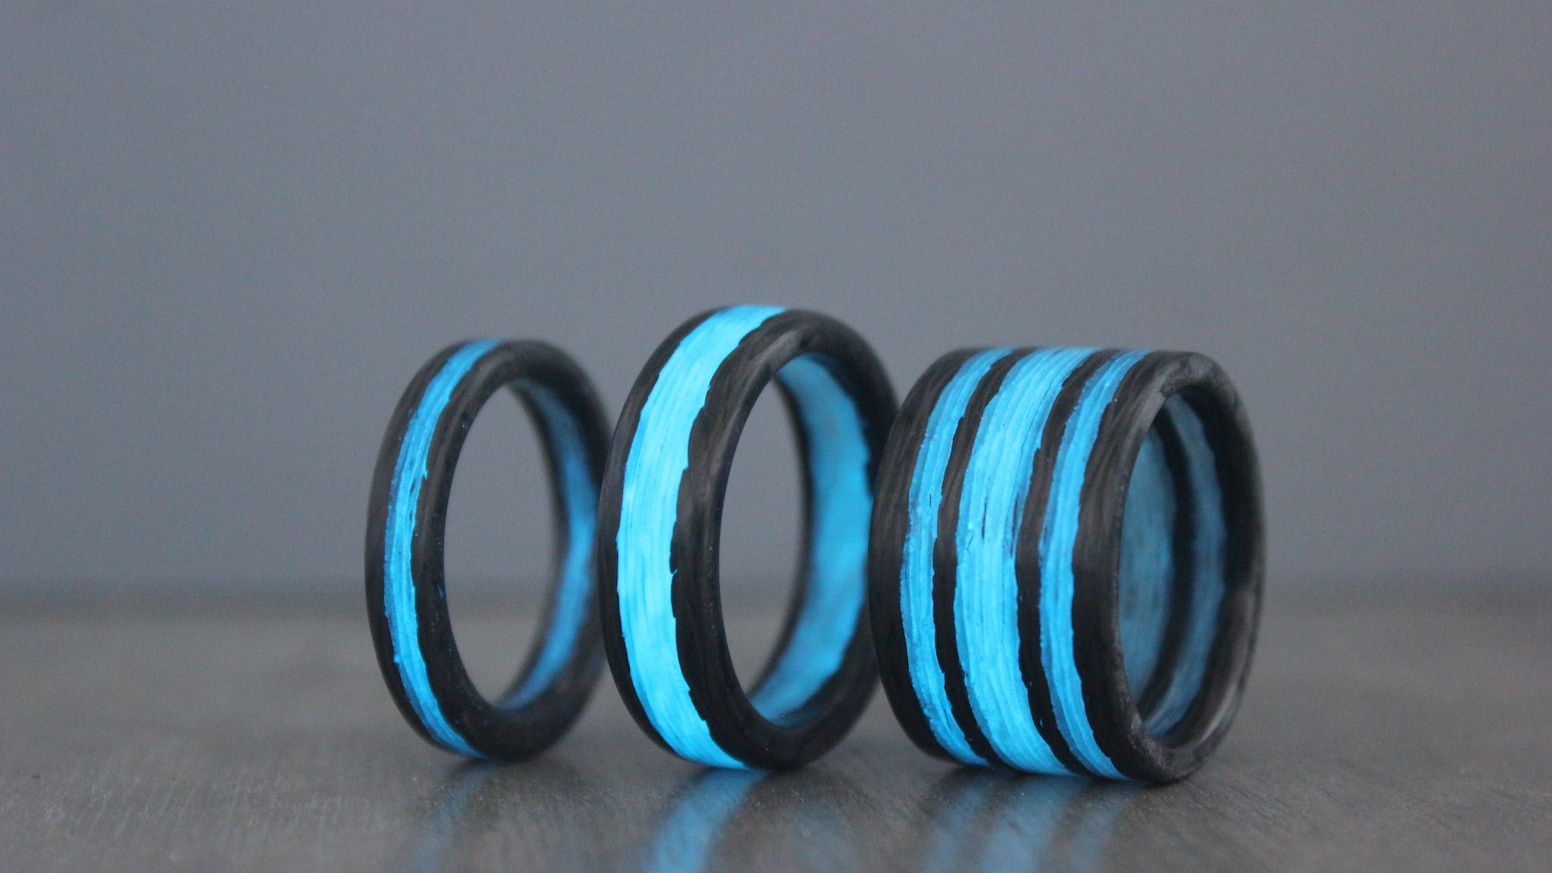 rings resized wound collection insert high band glow luminescent performance ring green lume filament collections